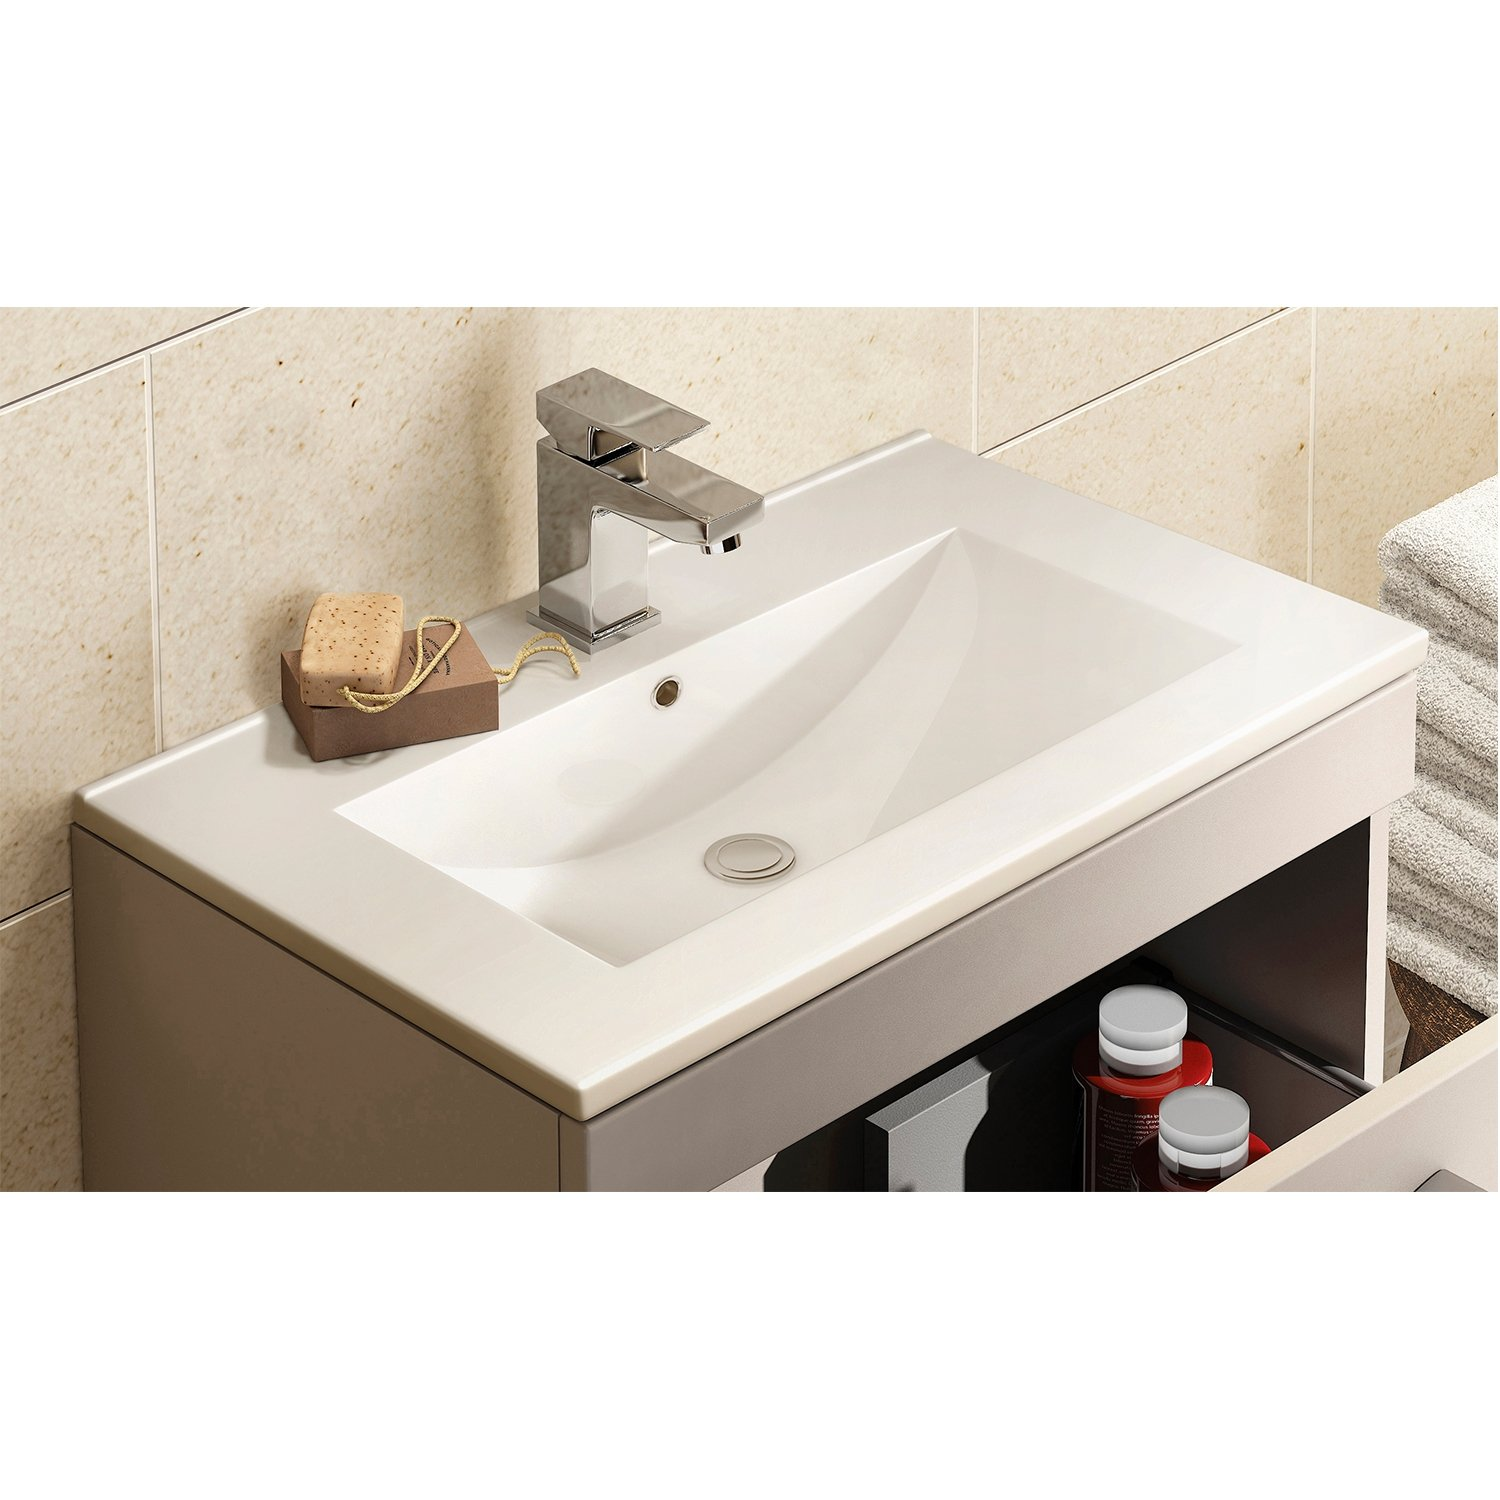 Premier shipton vanity unit 600mm floor mounted shp806 for Bathroom cabinets 500mm wide